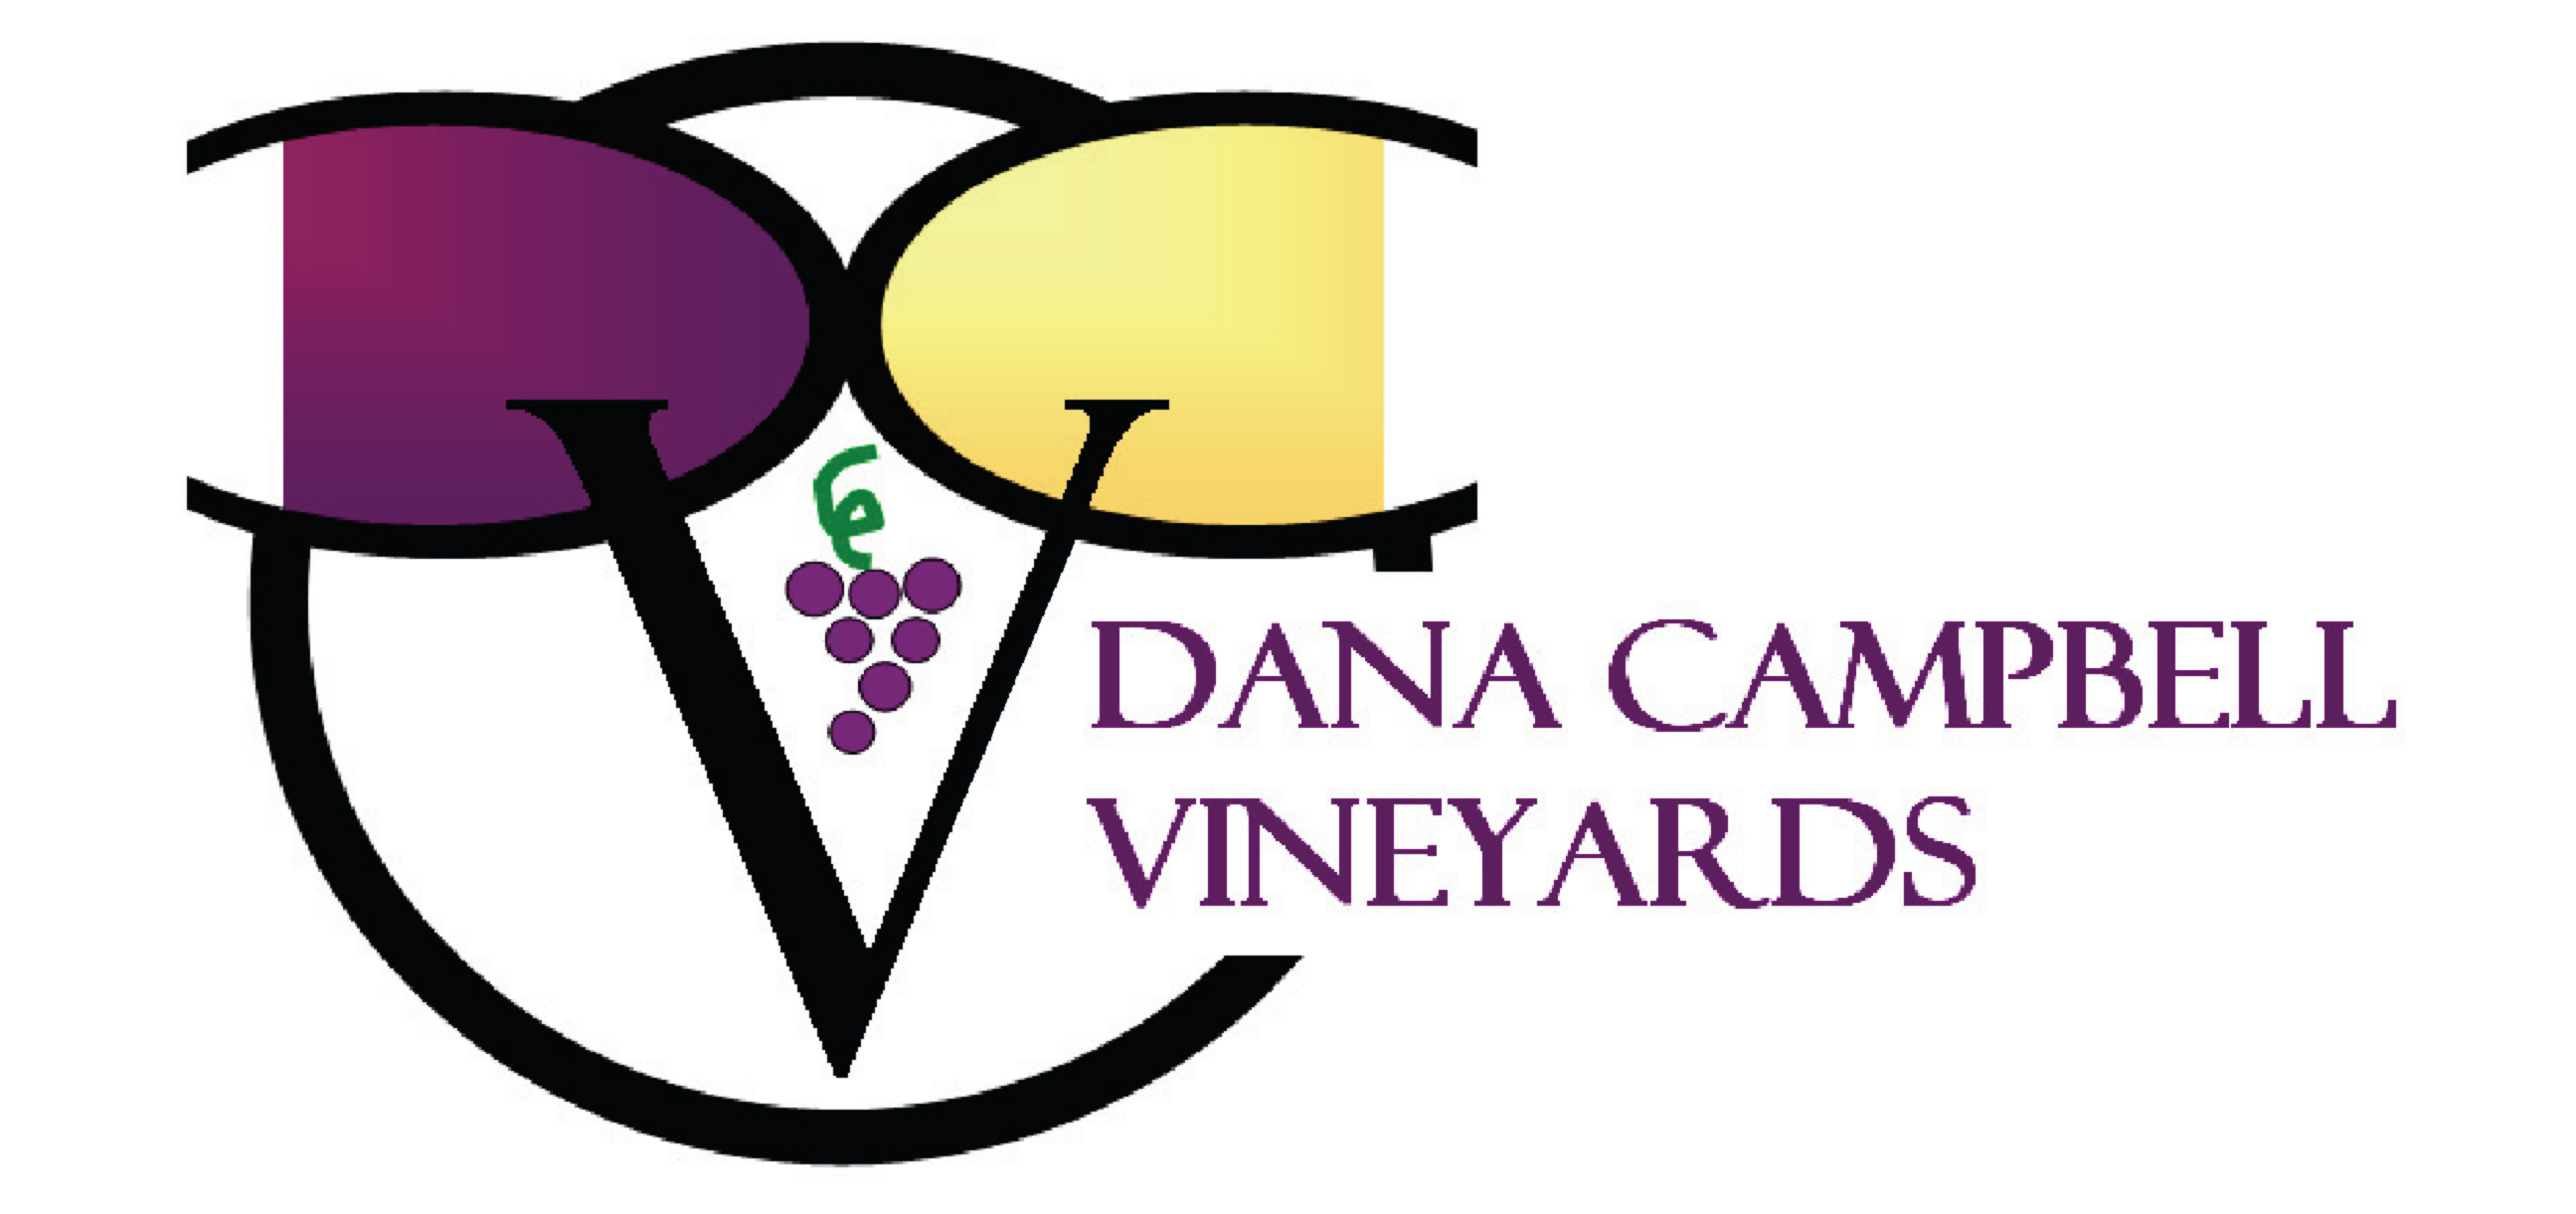 Dana Campbell Vineyards - Home